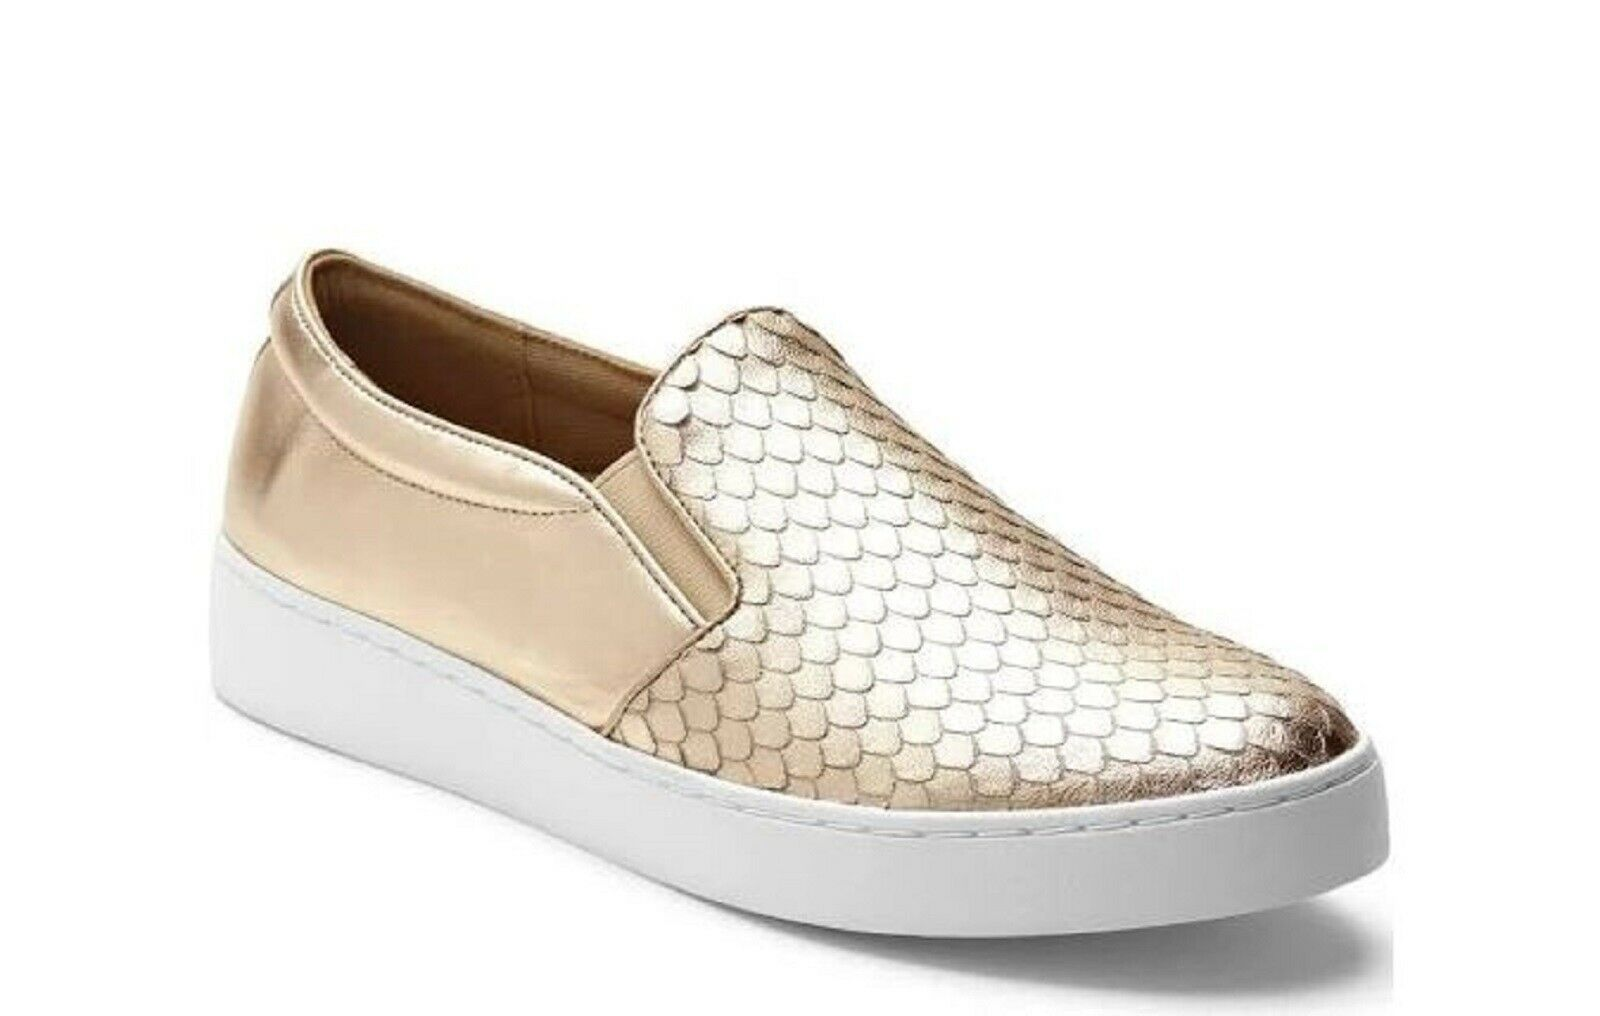 Vionic Orthaheel SPENDID MIDI Leather Slip-On shoes Sneakers CHAMPAGNE 10 M NIB